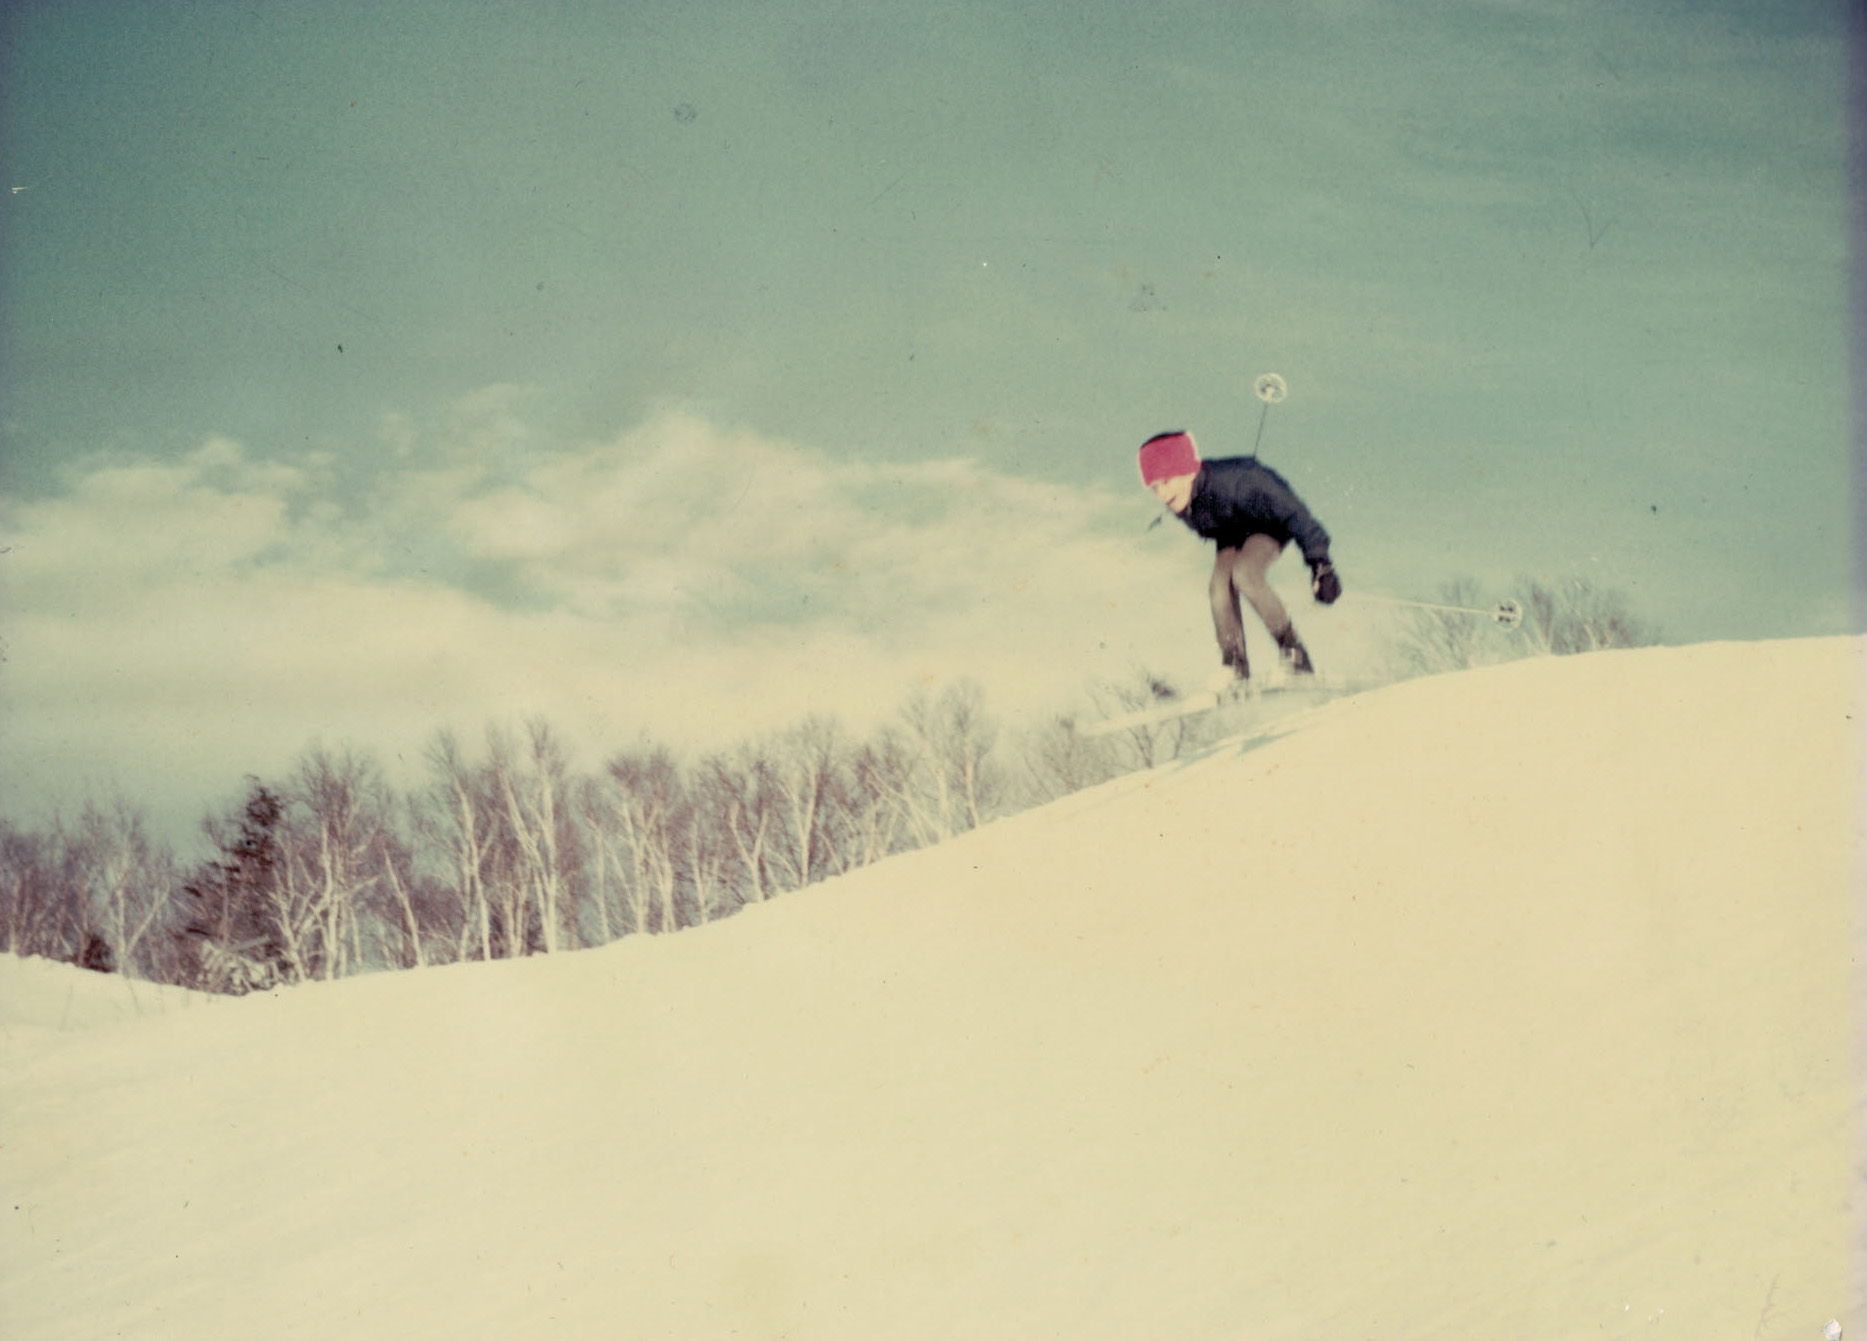 Mitch Larson gets some air at his father's Nor Ski Ridge hill in Fish Creek in the 1960s. Years later, Larson opened a sportswear store, no doubt influenced by his time on the hill.